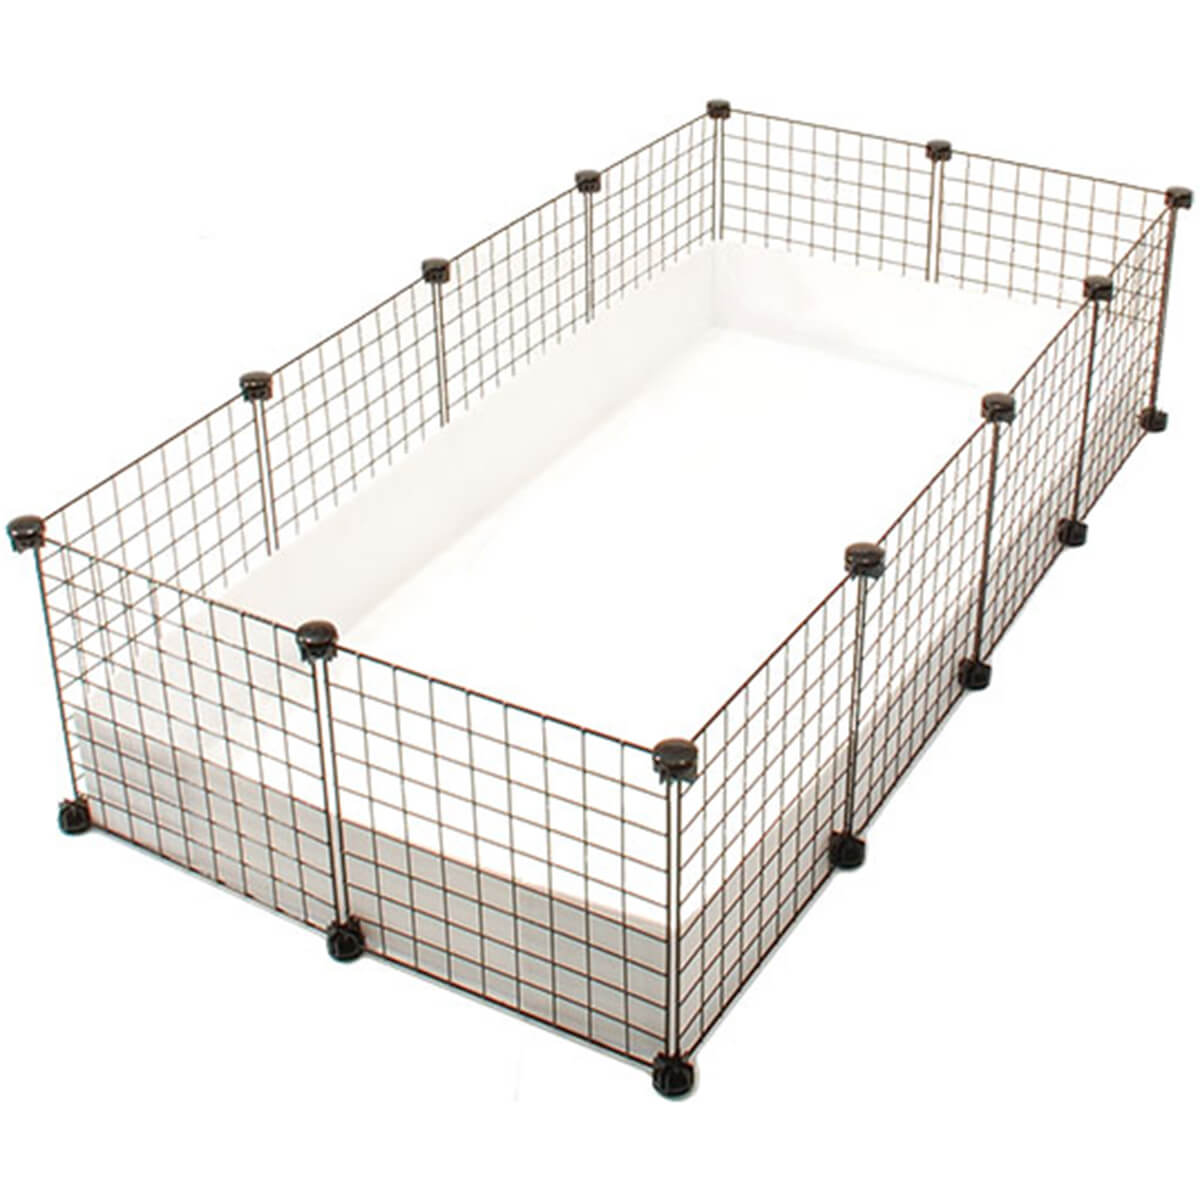 large 2x4 grids cage clearance cages c c cages for